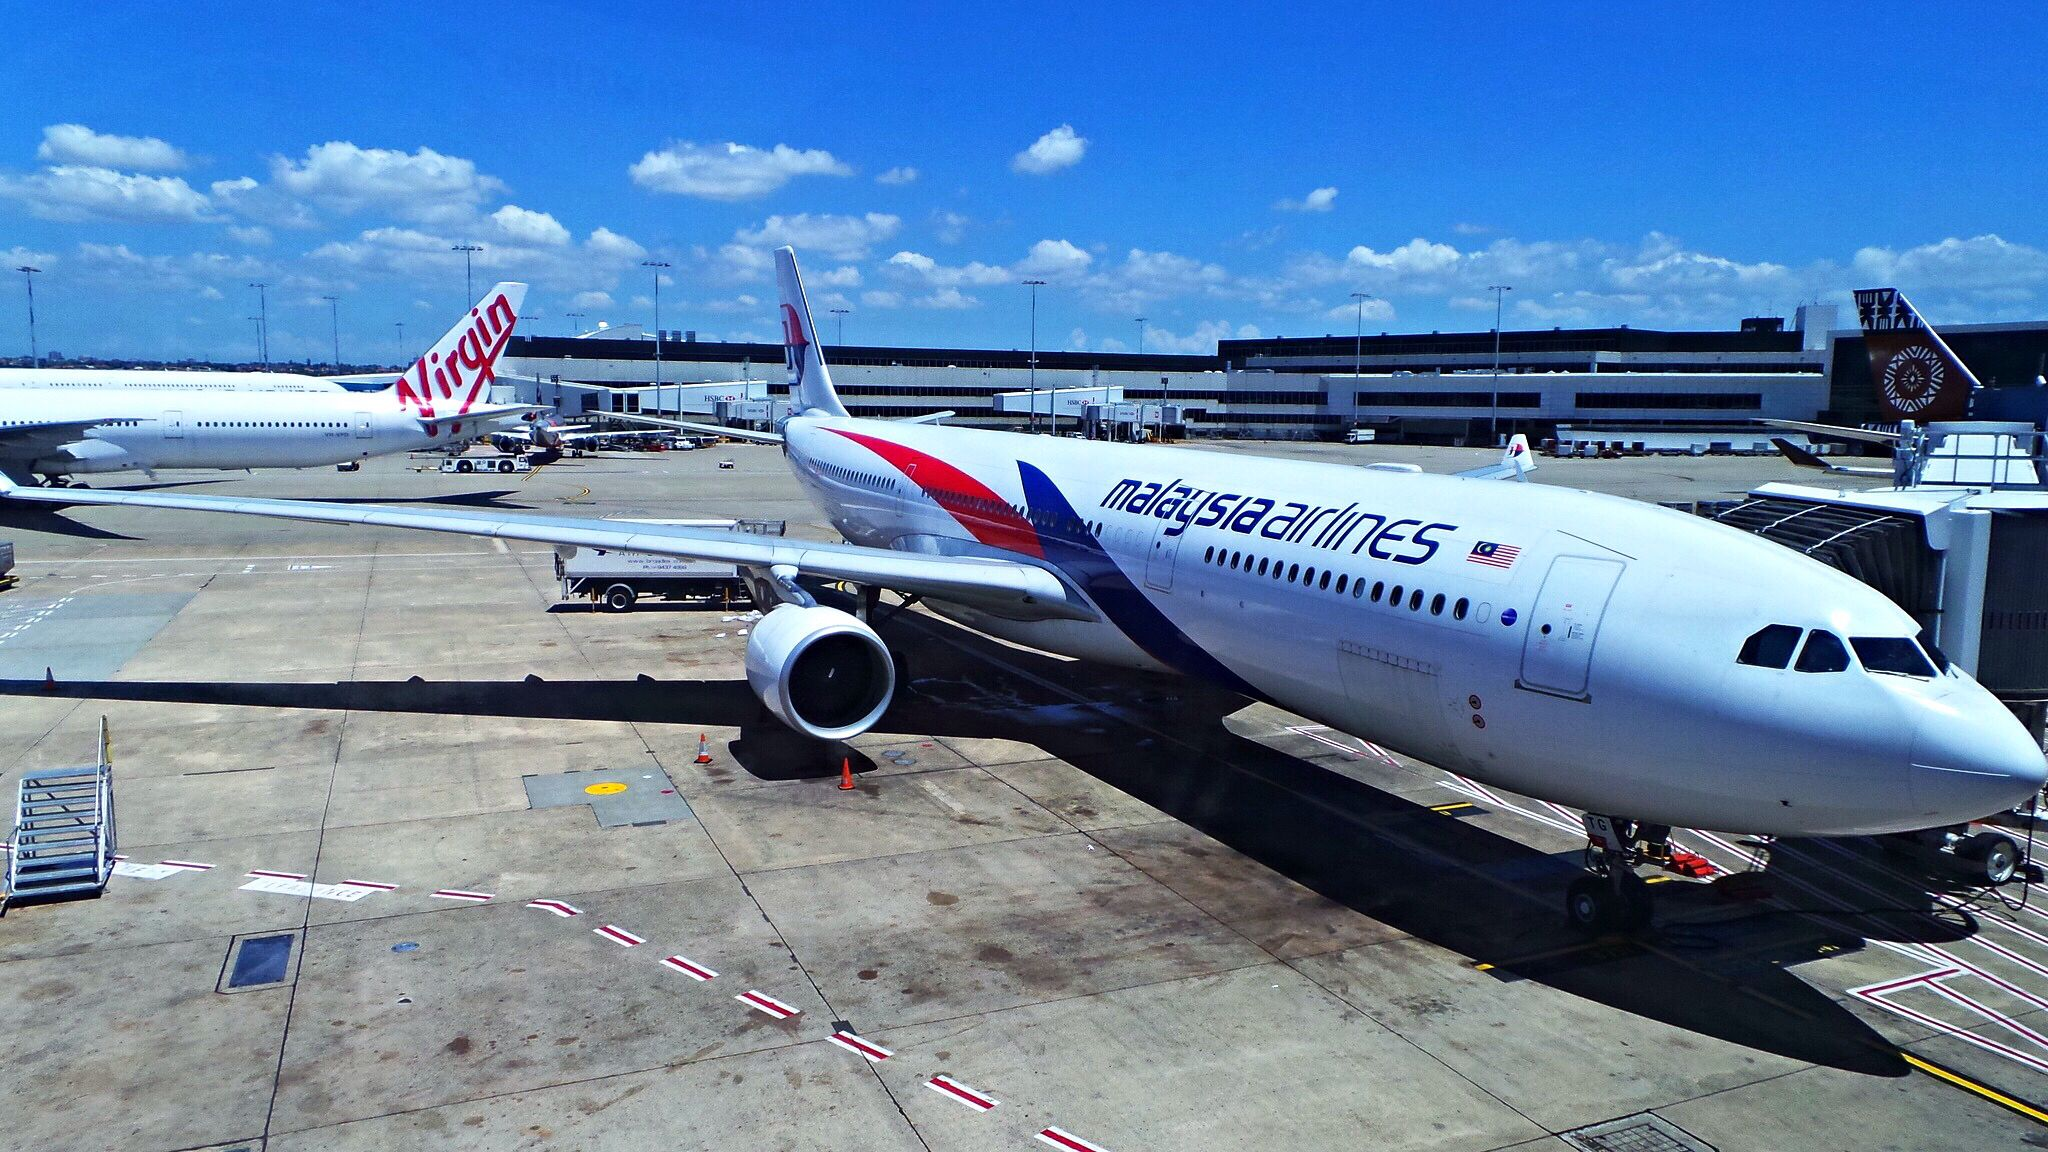 Malaysia Airlines in SYD Malaysia airlines, Airbus, Aviation